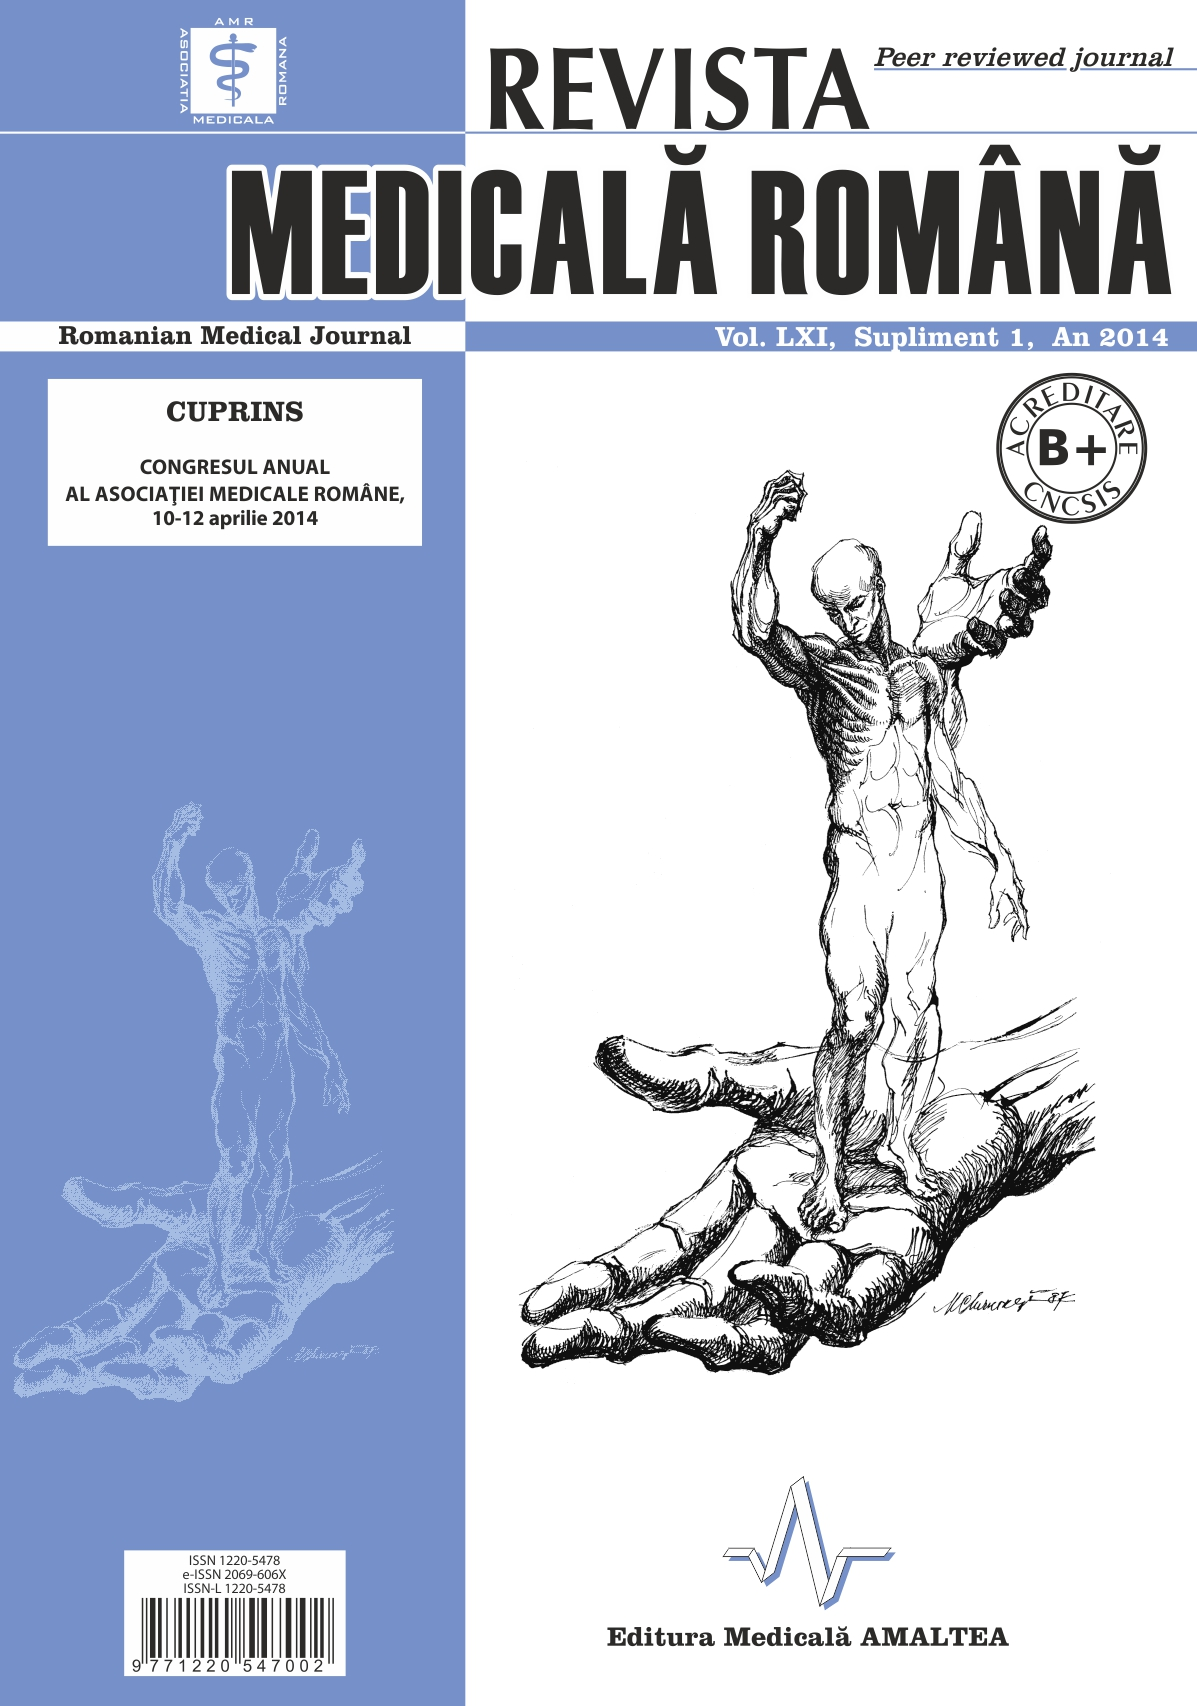 REVISTA MEDICALA ROMANA - Romanian Medical Journal, Vol. LXI, Supliment, An 2014